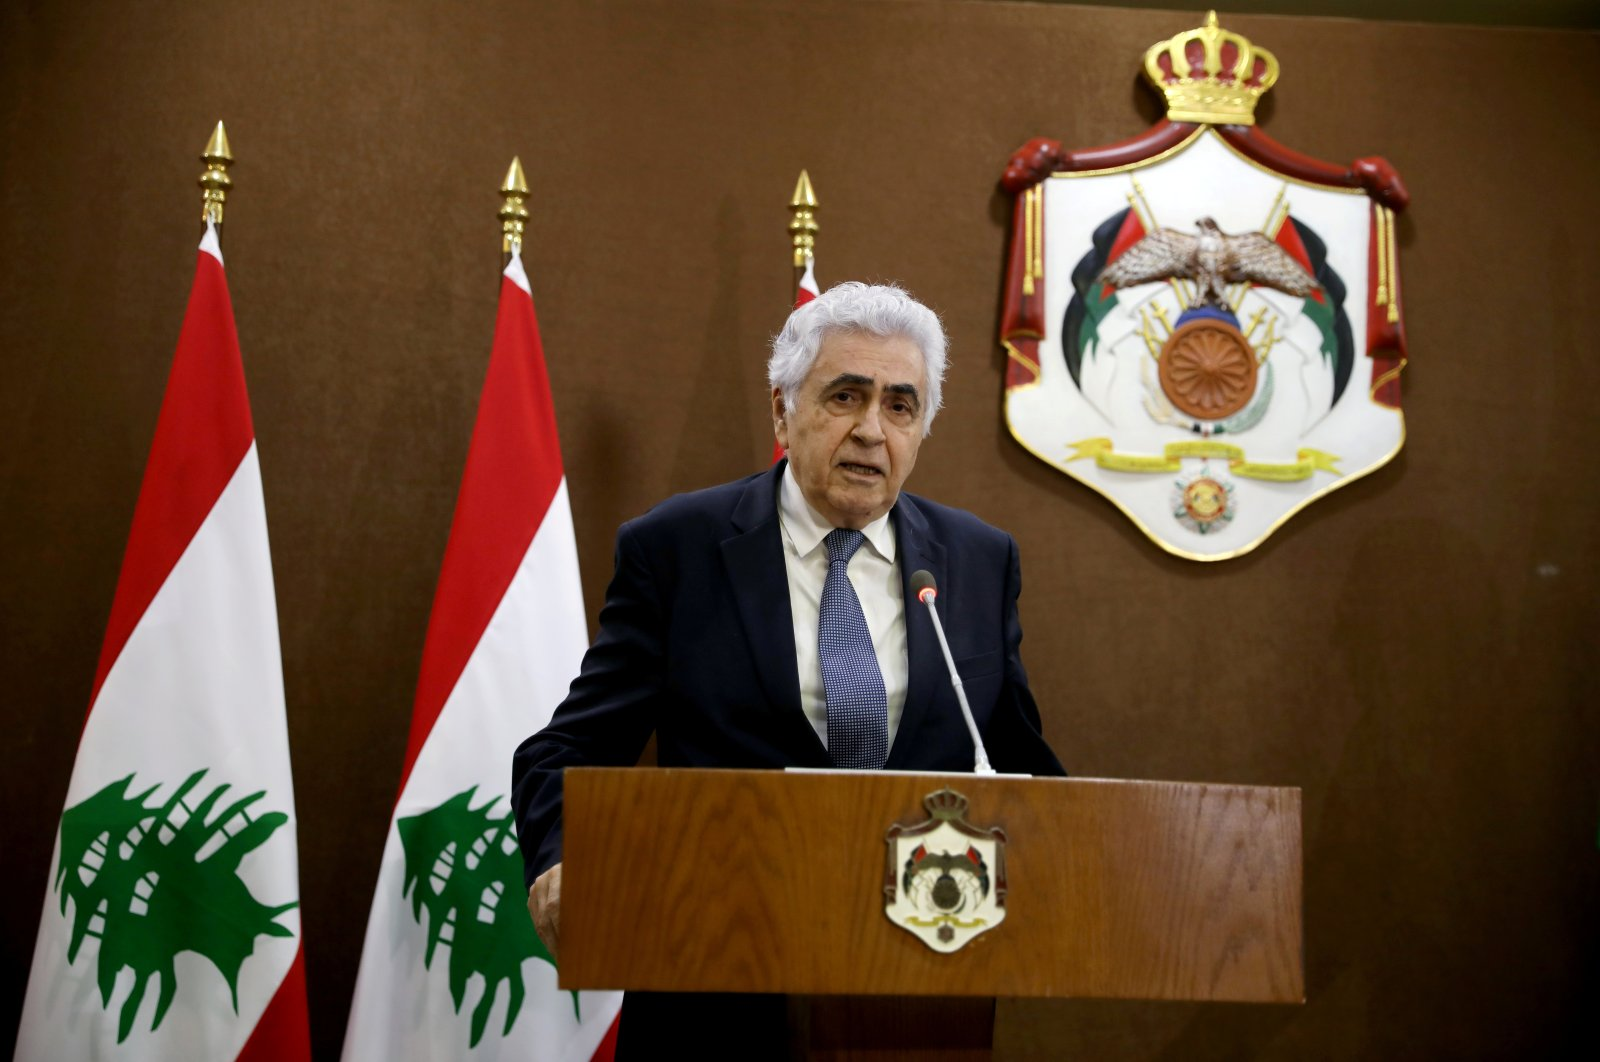 Lebanese Foreign Minister Nassif Hitti speaks at a news conference in Amman, Jordan, July 2, 2020. (Reuters Photo)